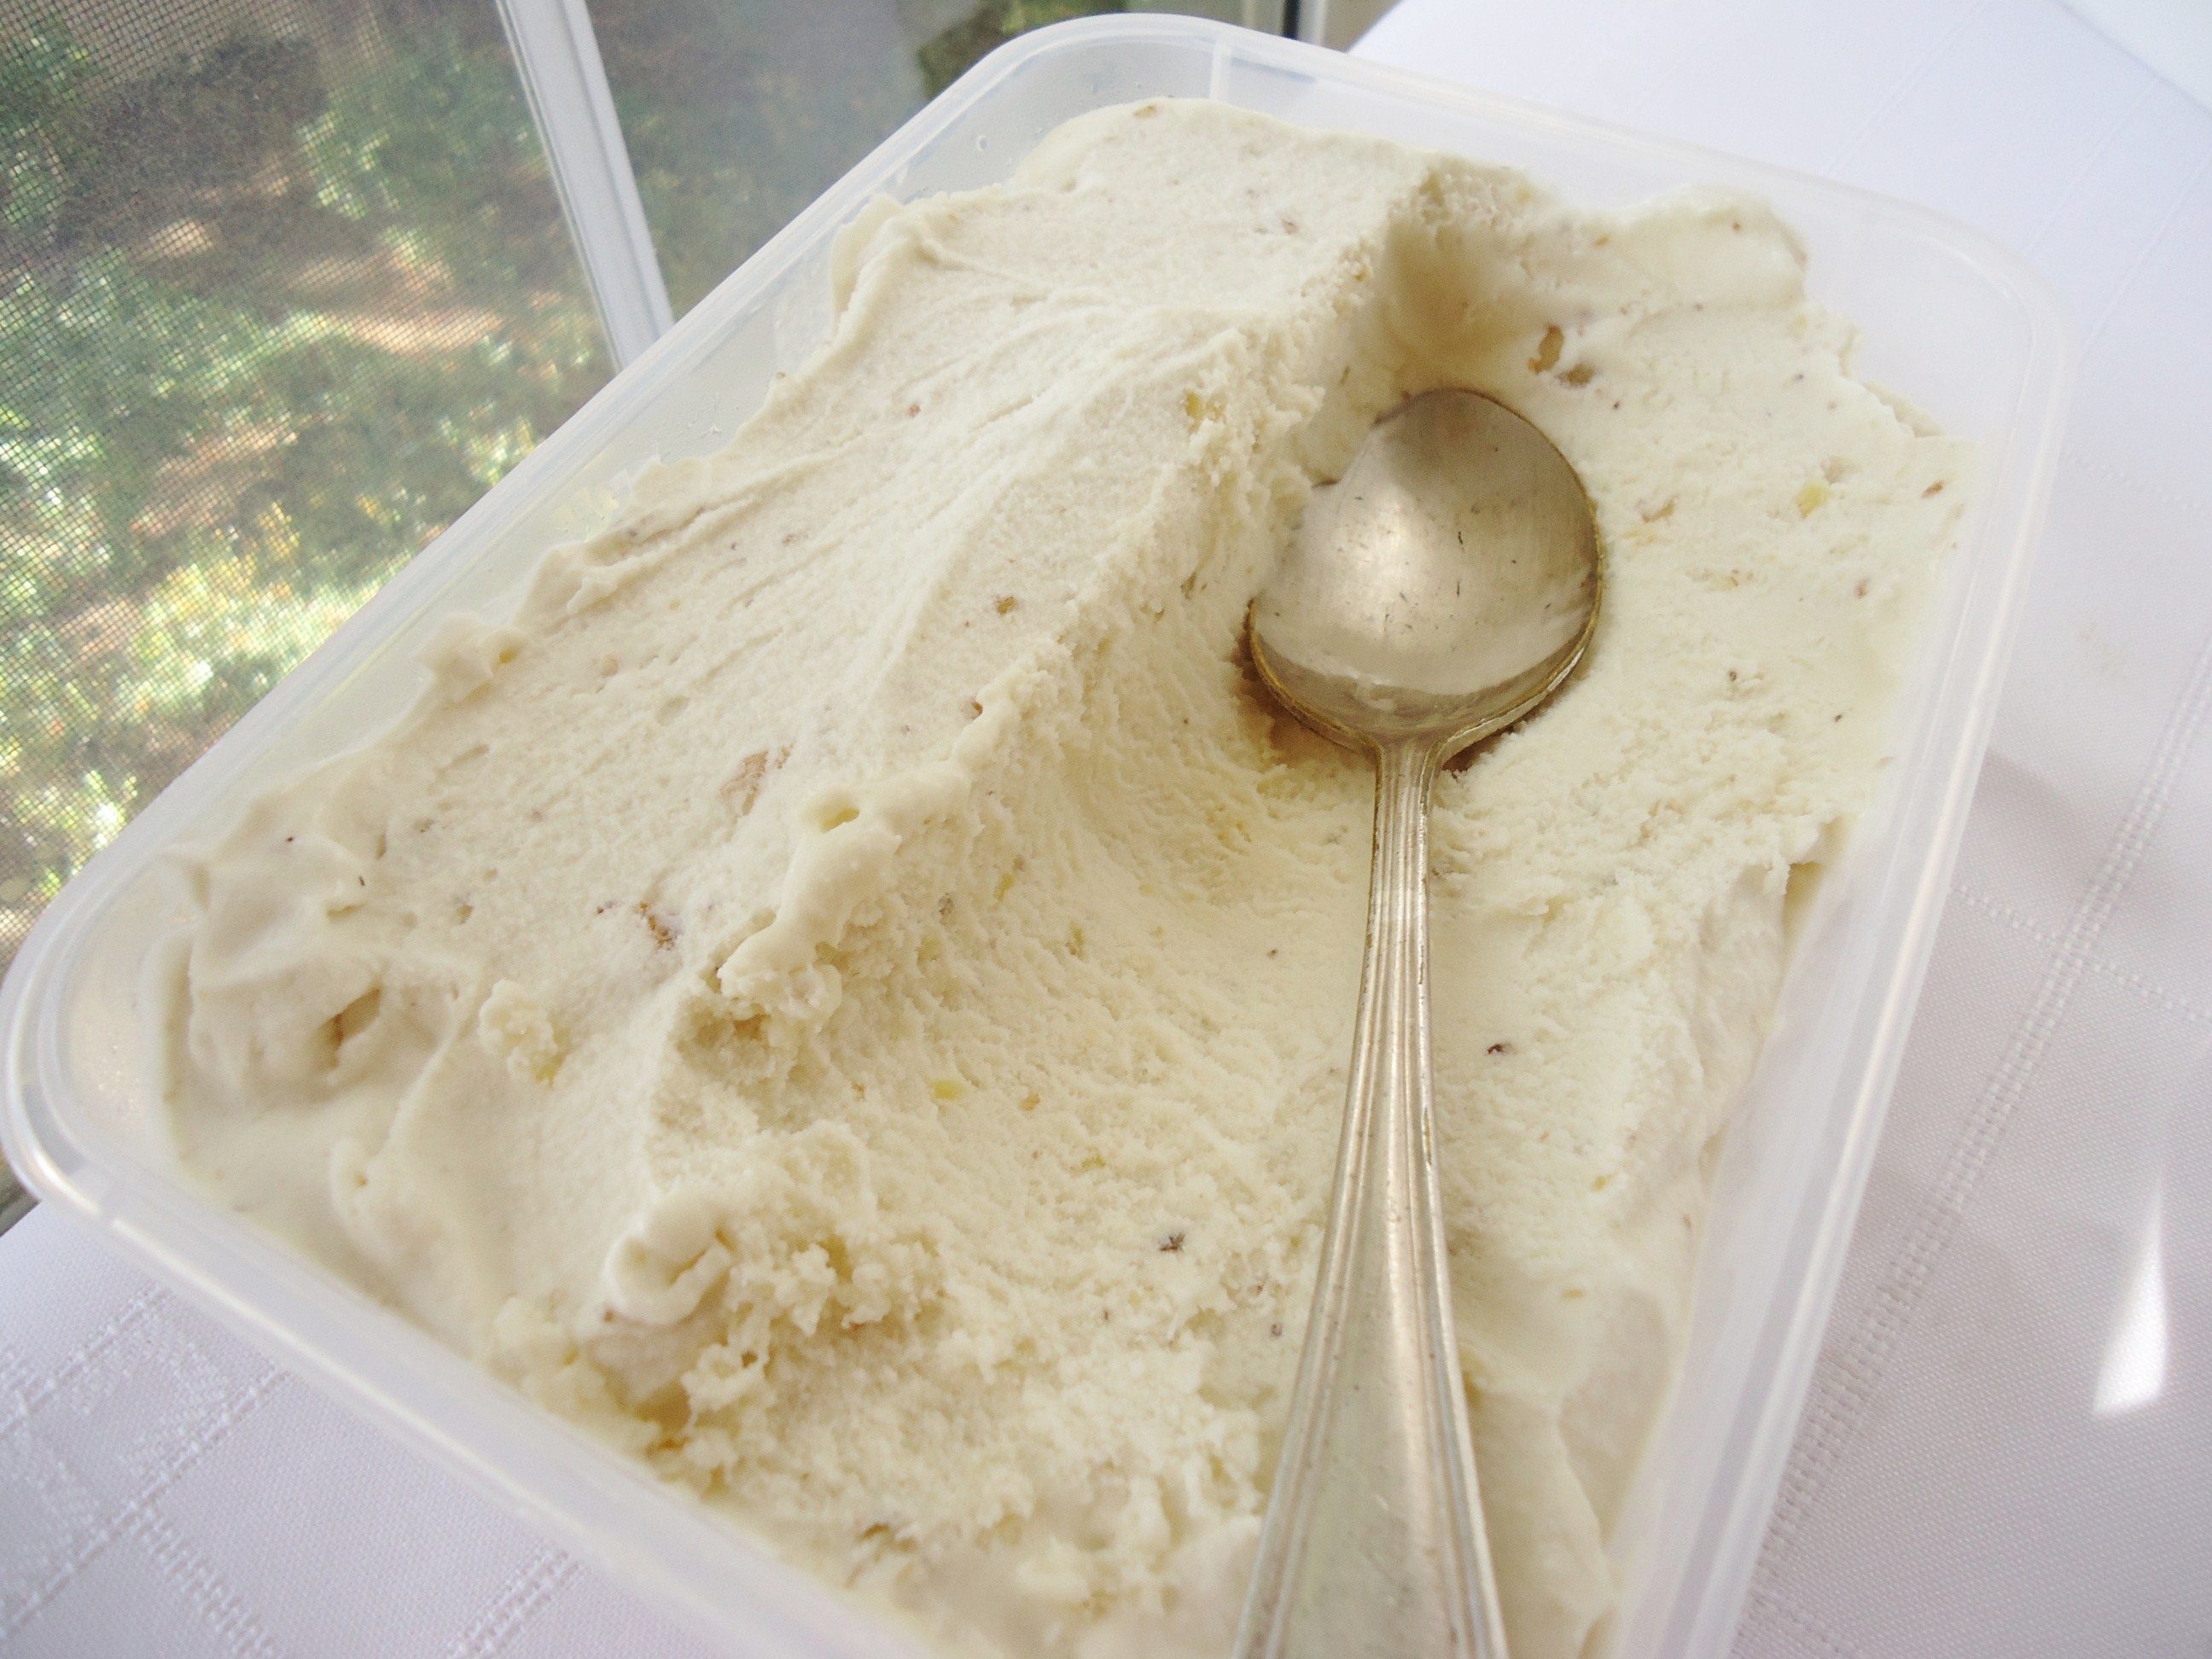 banana ice cream recipe seemed like the best choice